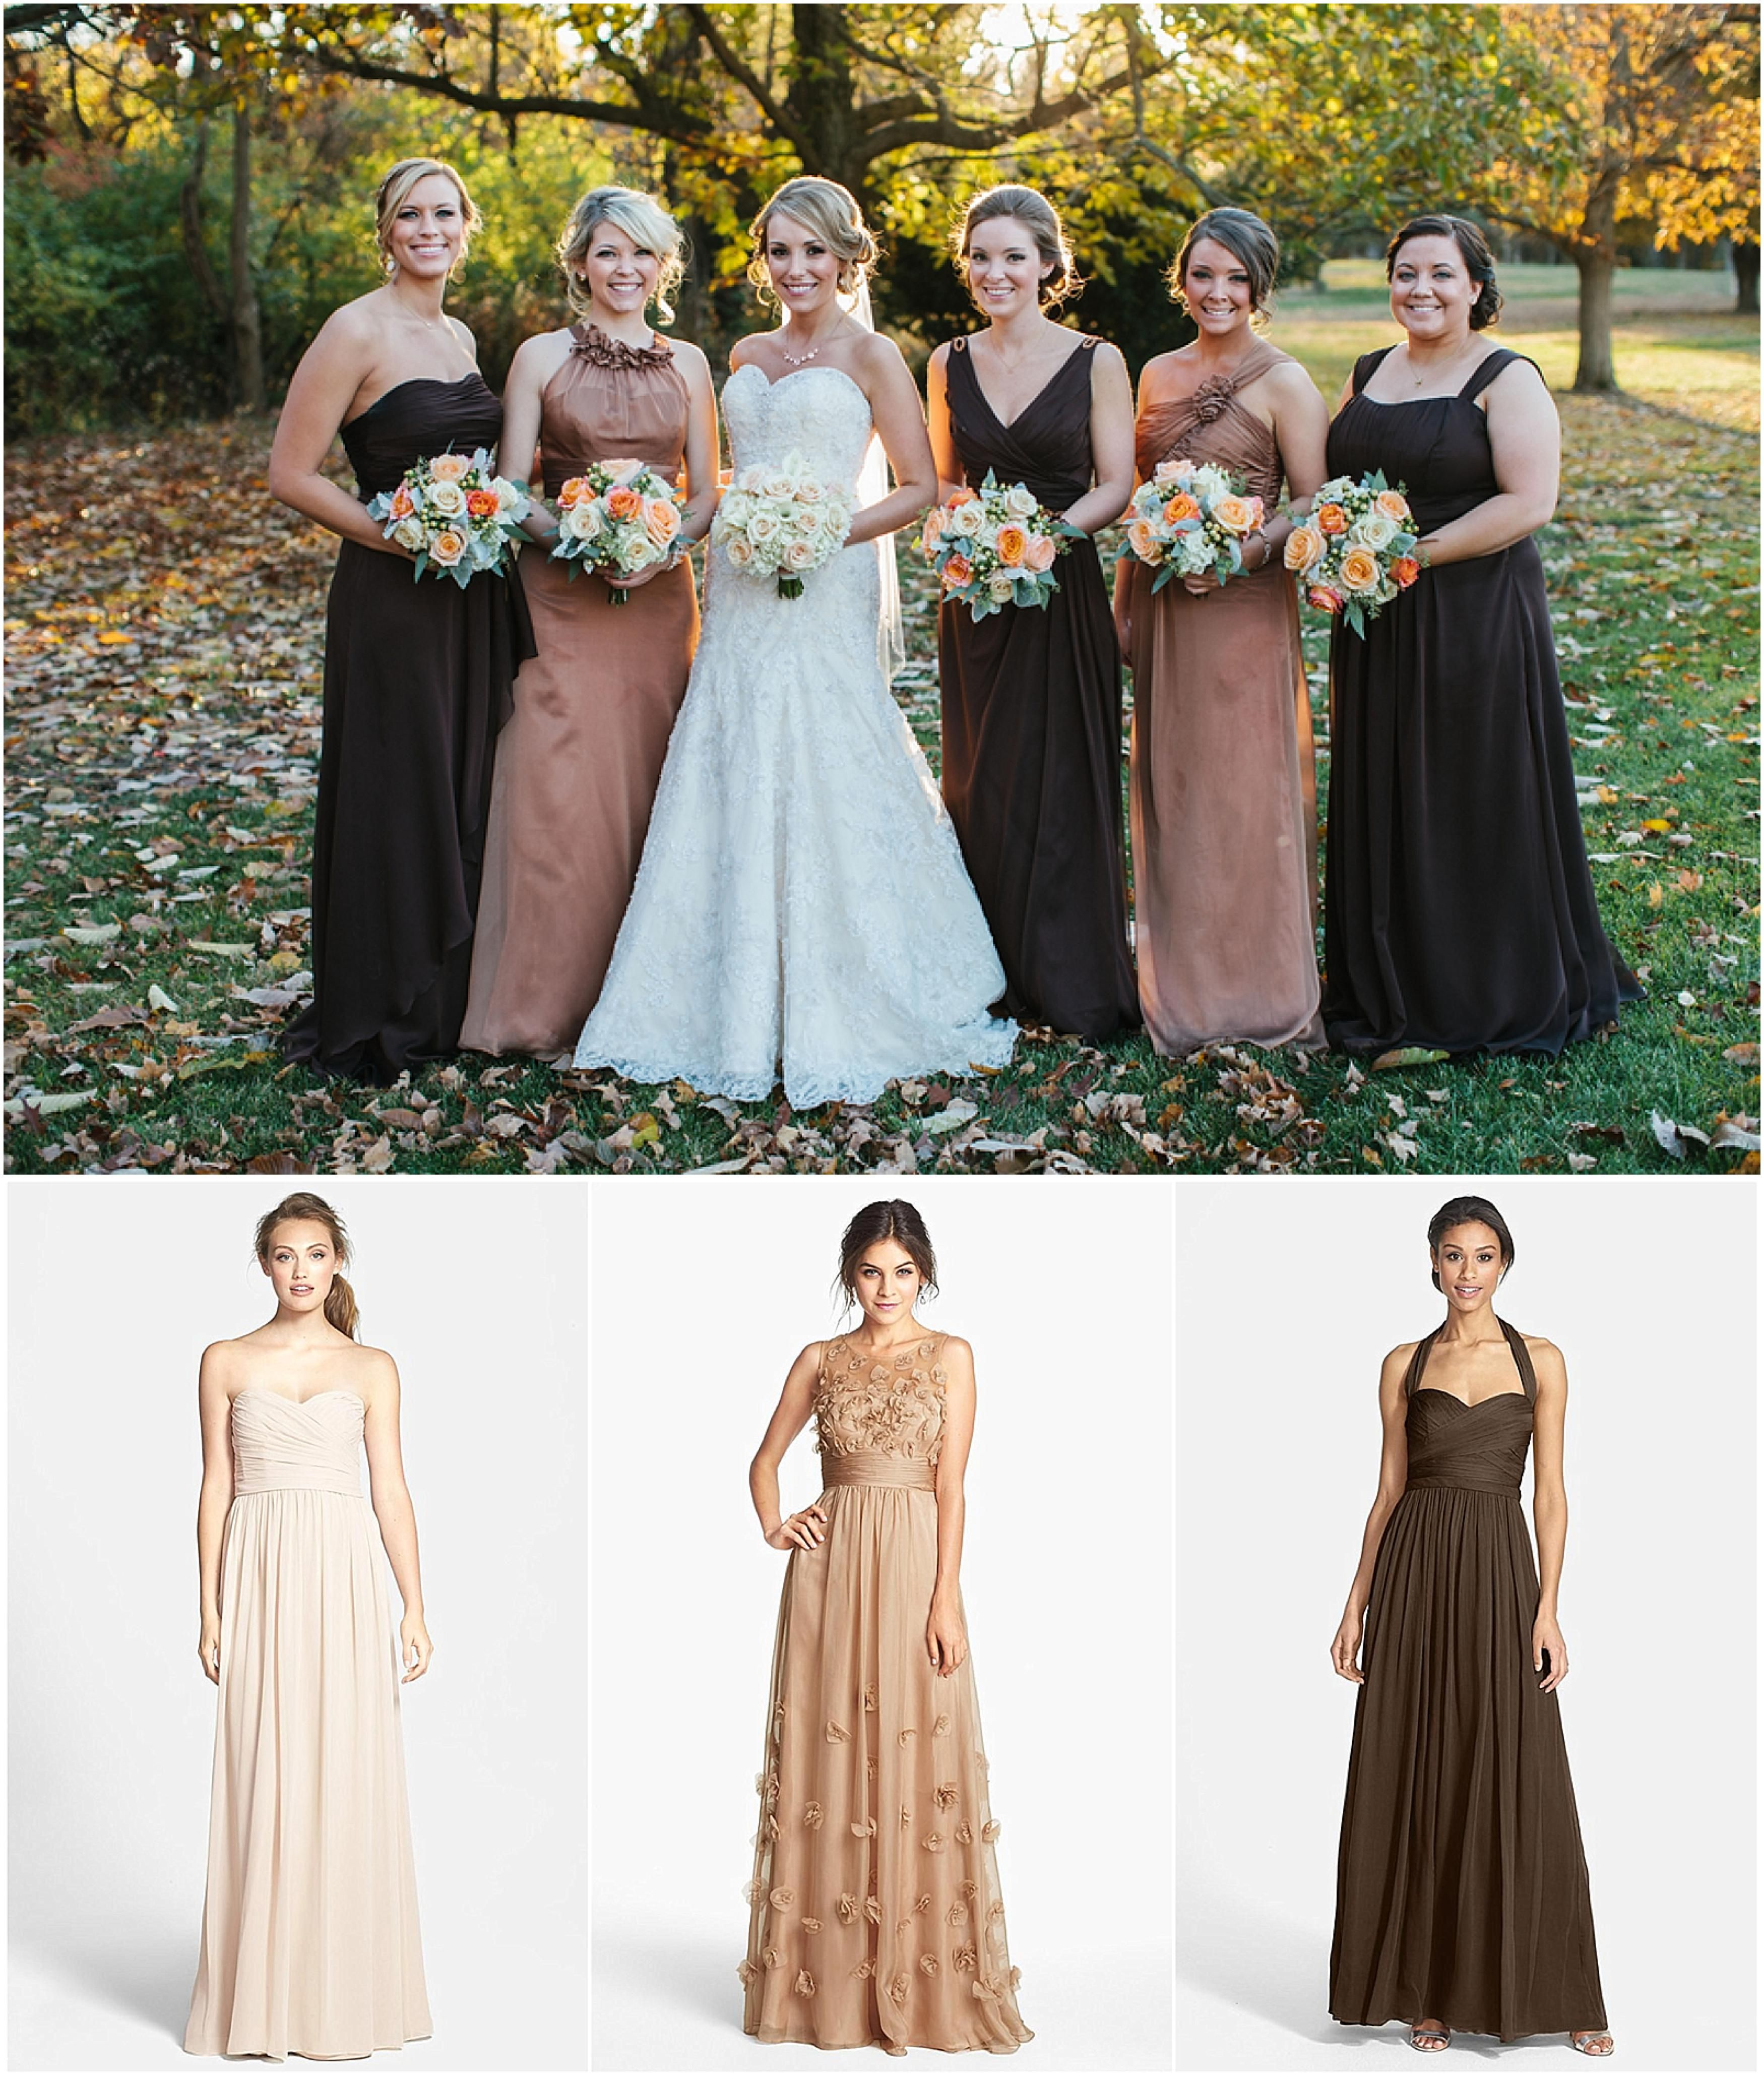 Gorgeous Mismatched Brown Bridesmaid Dresses This Is Great For A Fall Wedding Fall Bridesmaid Dresses Wedding Bridesmaid Dresses Brown Bridesmaid Dresses